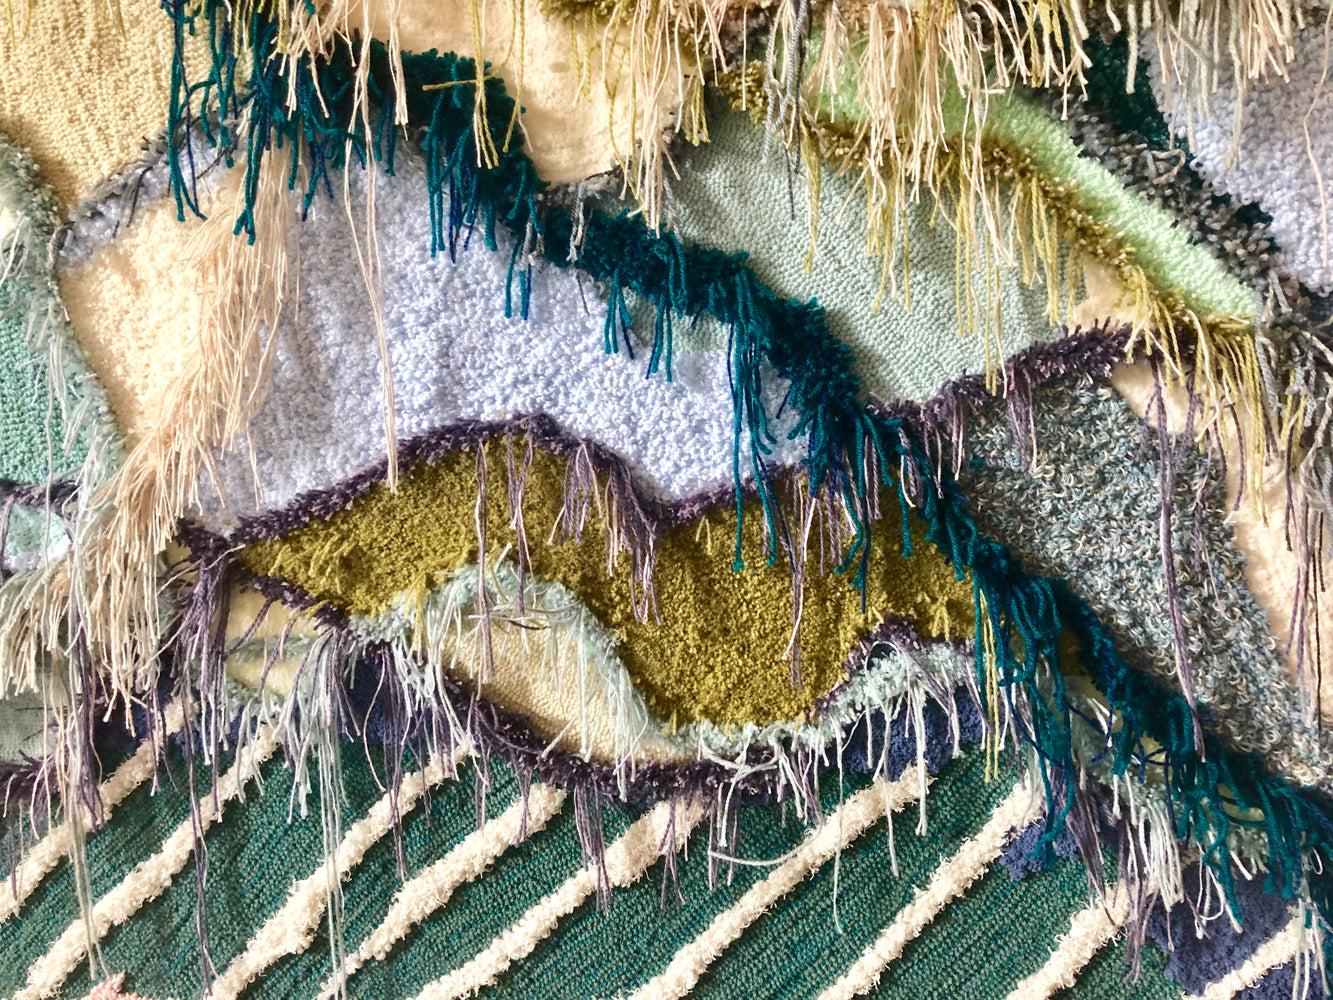 Trish Andersen studio large scale fiber art tufting close up landscape